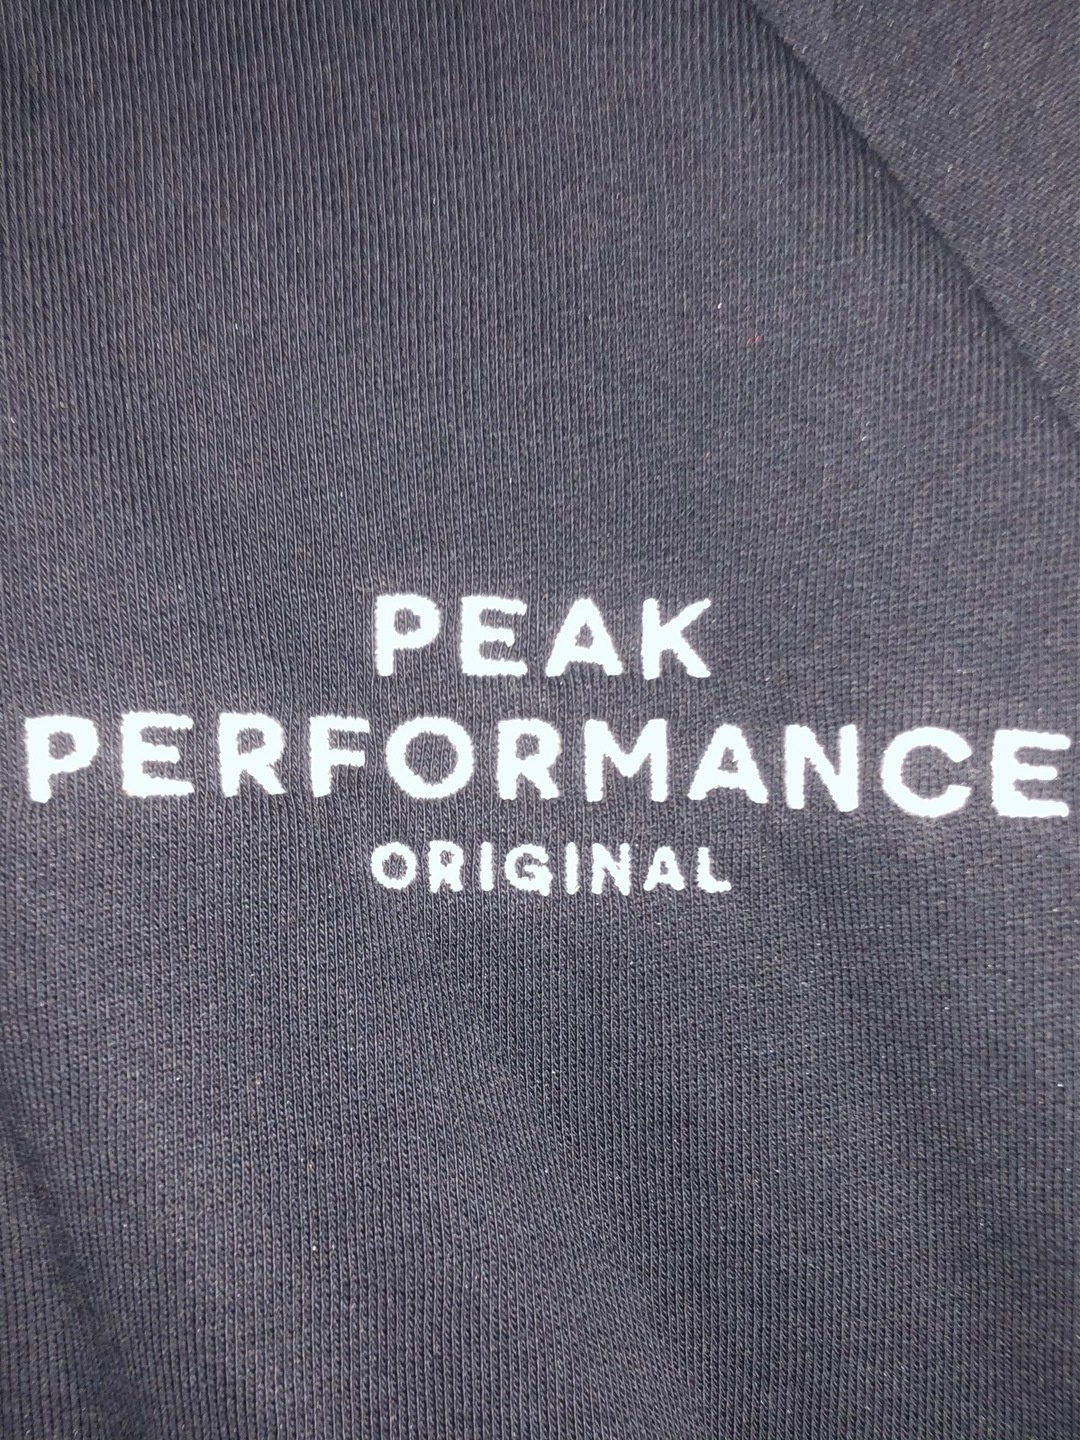 Women's hoodies & sweatshirts - PEAK PERFORMANCE photo 3